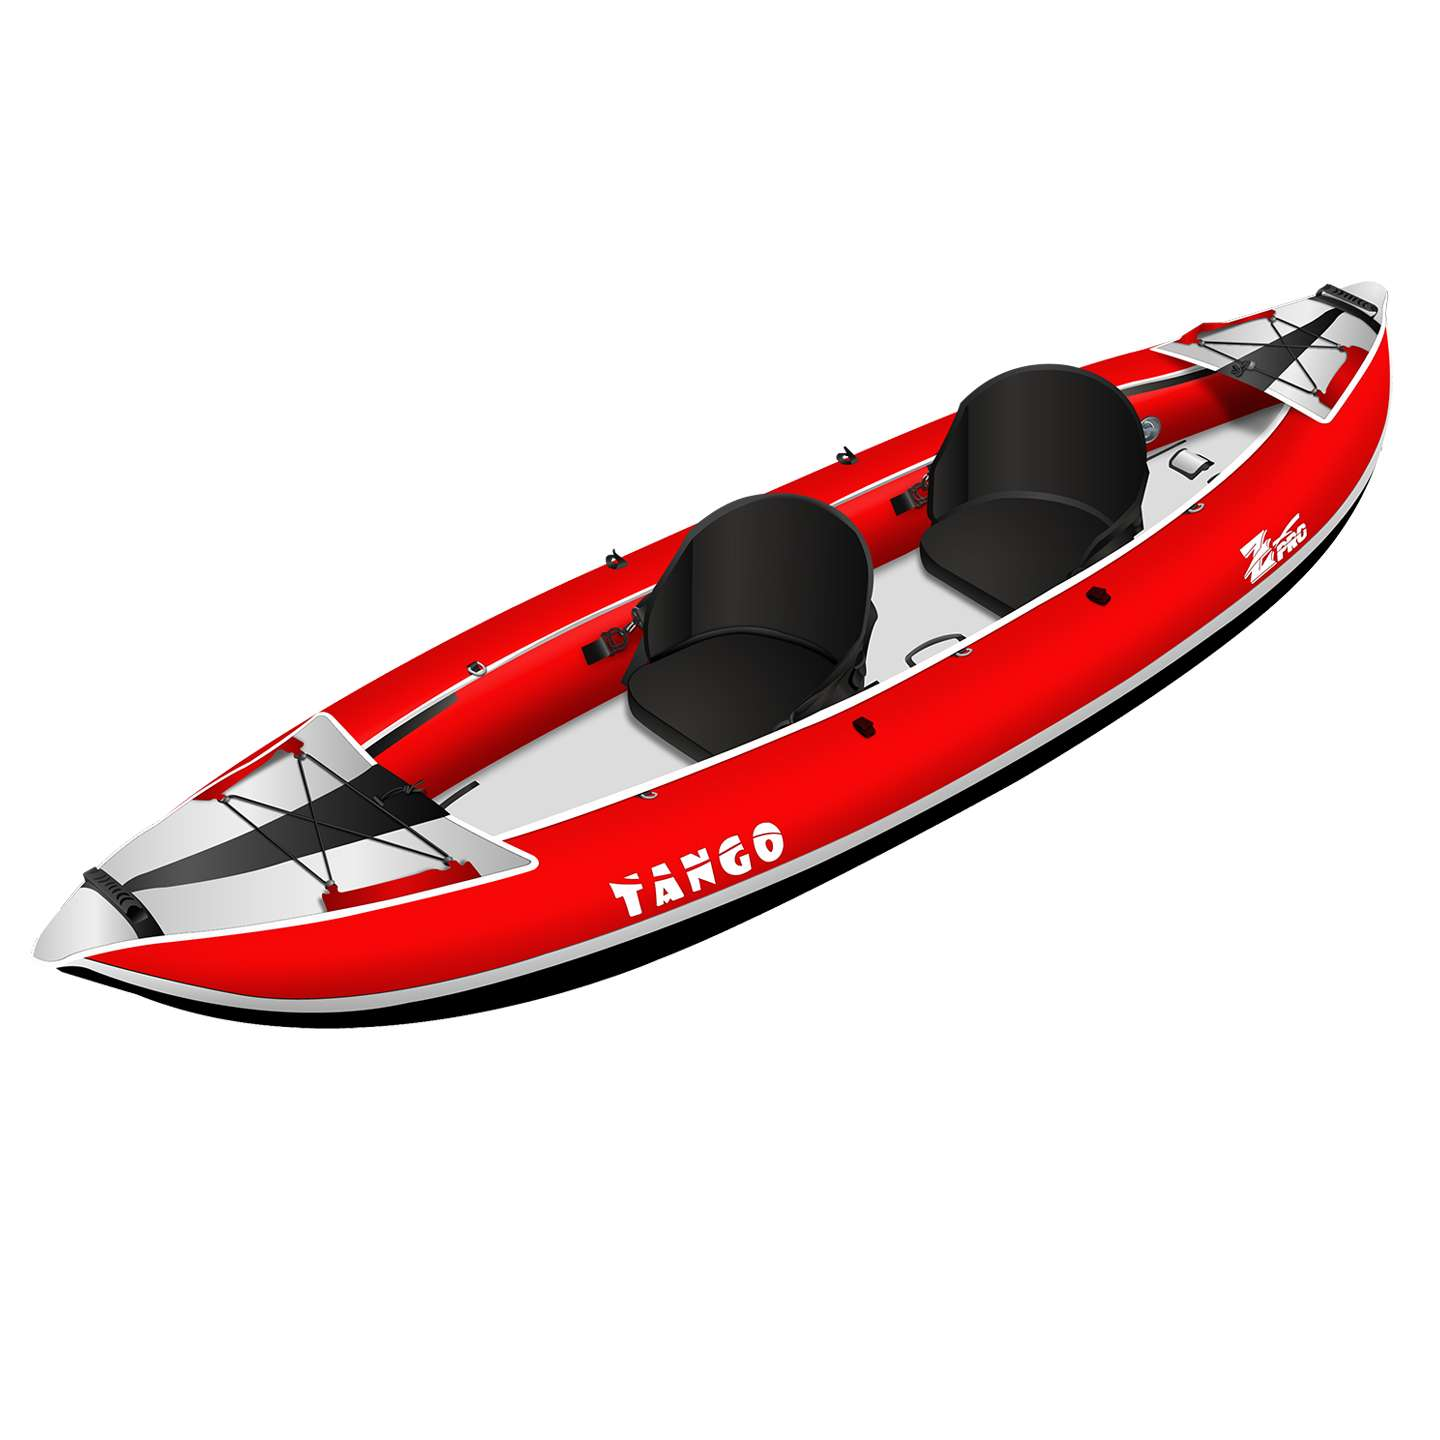 Details about Z-Pro Tango 2 Inflatable Kayak Red - 1 or 2 Person Kayak